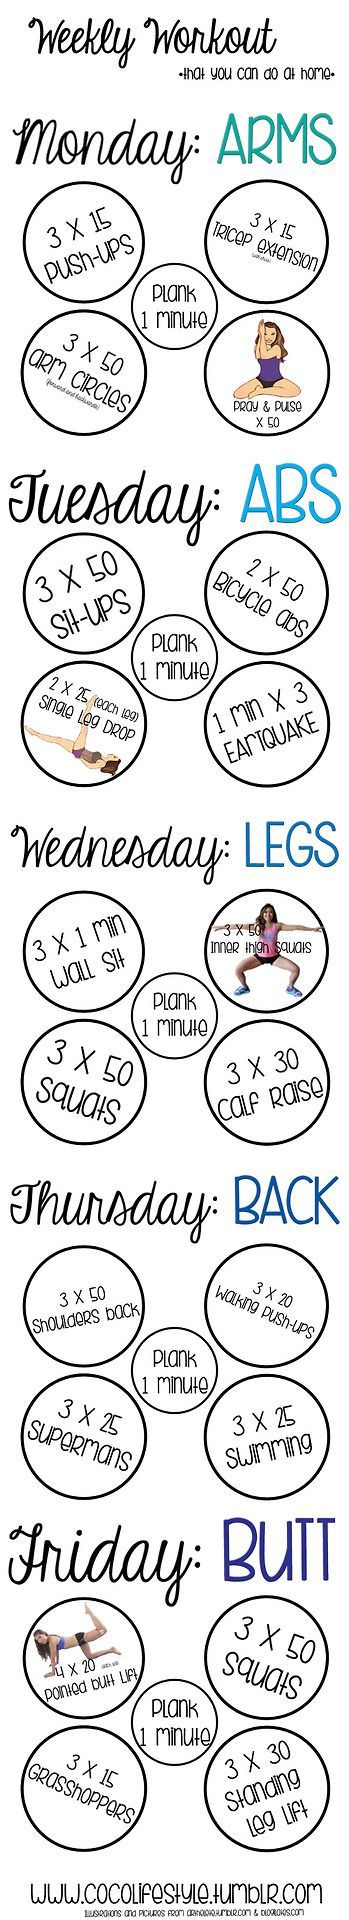 Weekly workout you can do at home.